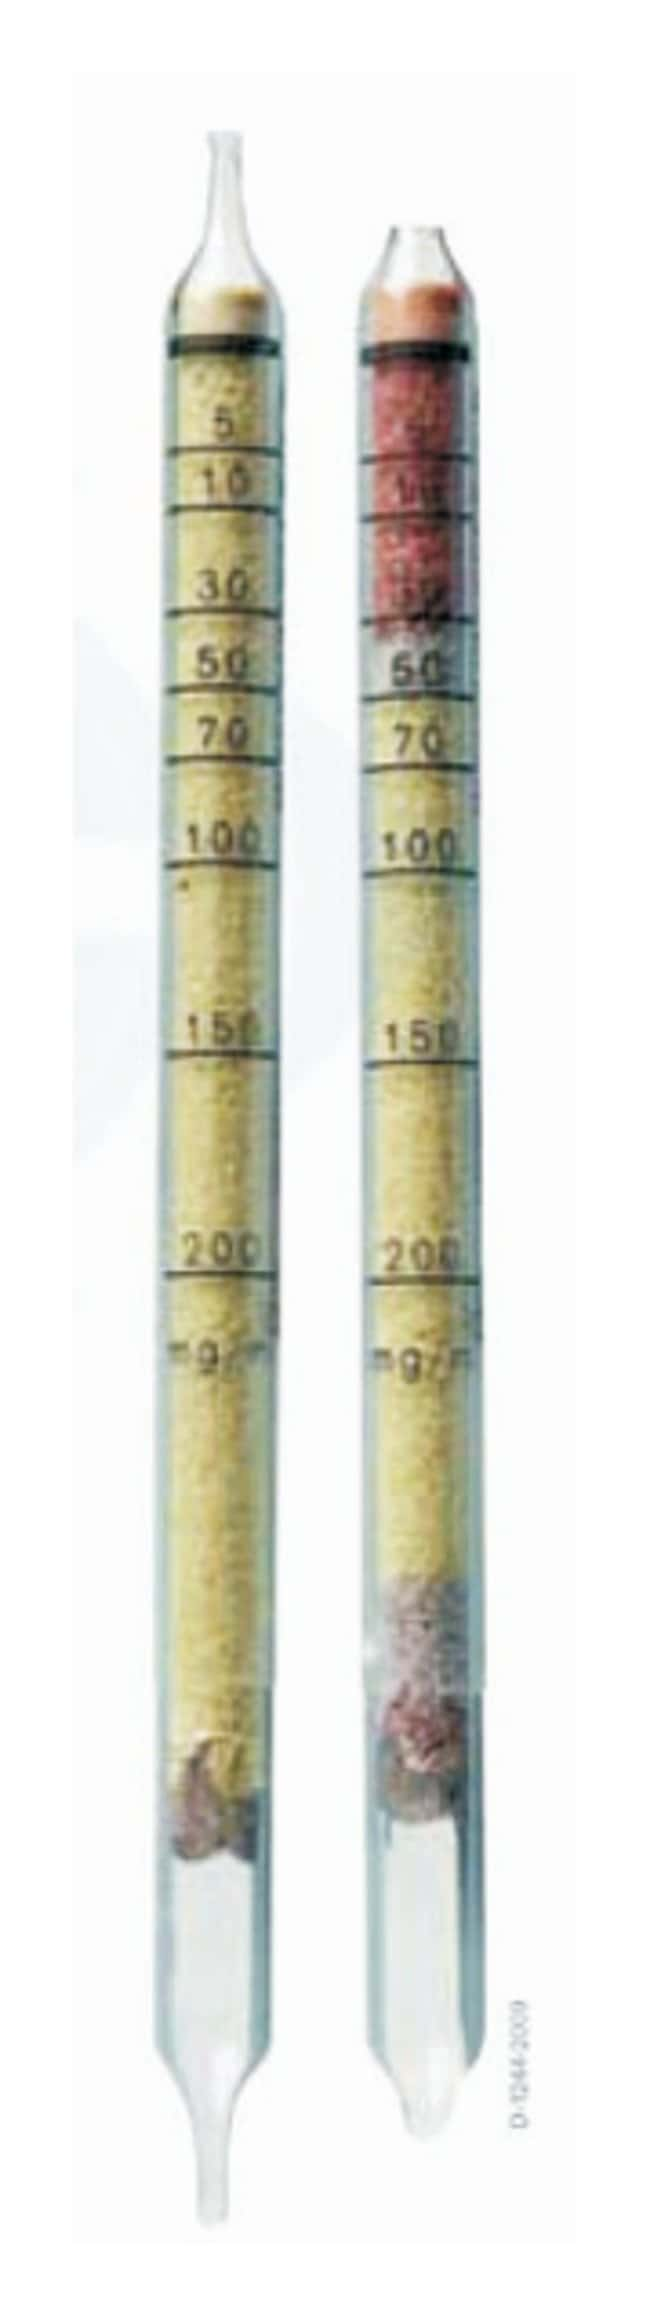 DrgerShort-Term Detector Tubes: Water Vapor Water Vapor (5/a-p); 5 to 200mg/m<sup>3</sup>:Industrial